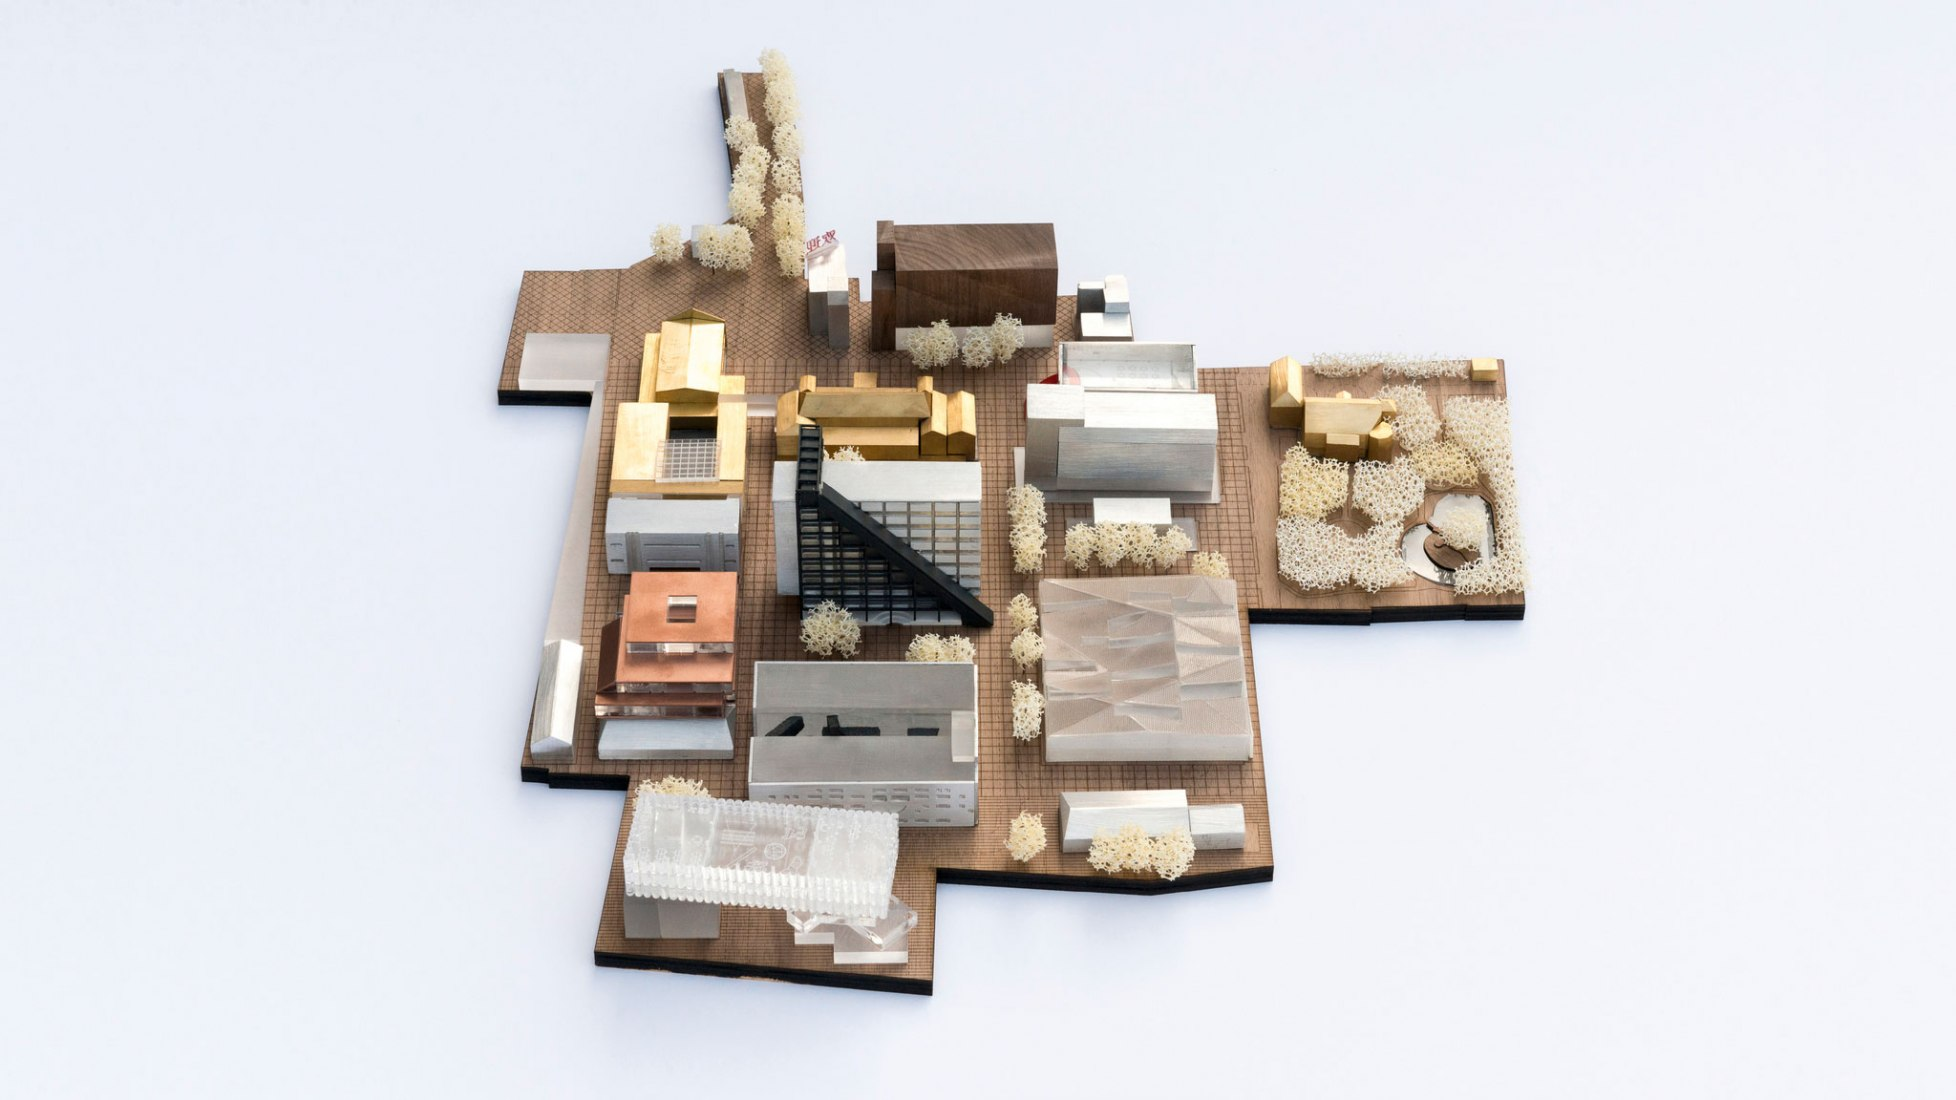 Model overview. Columbia Circle by OMA. Photograph @ Frans Parthesius, Courtesy of OMA.